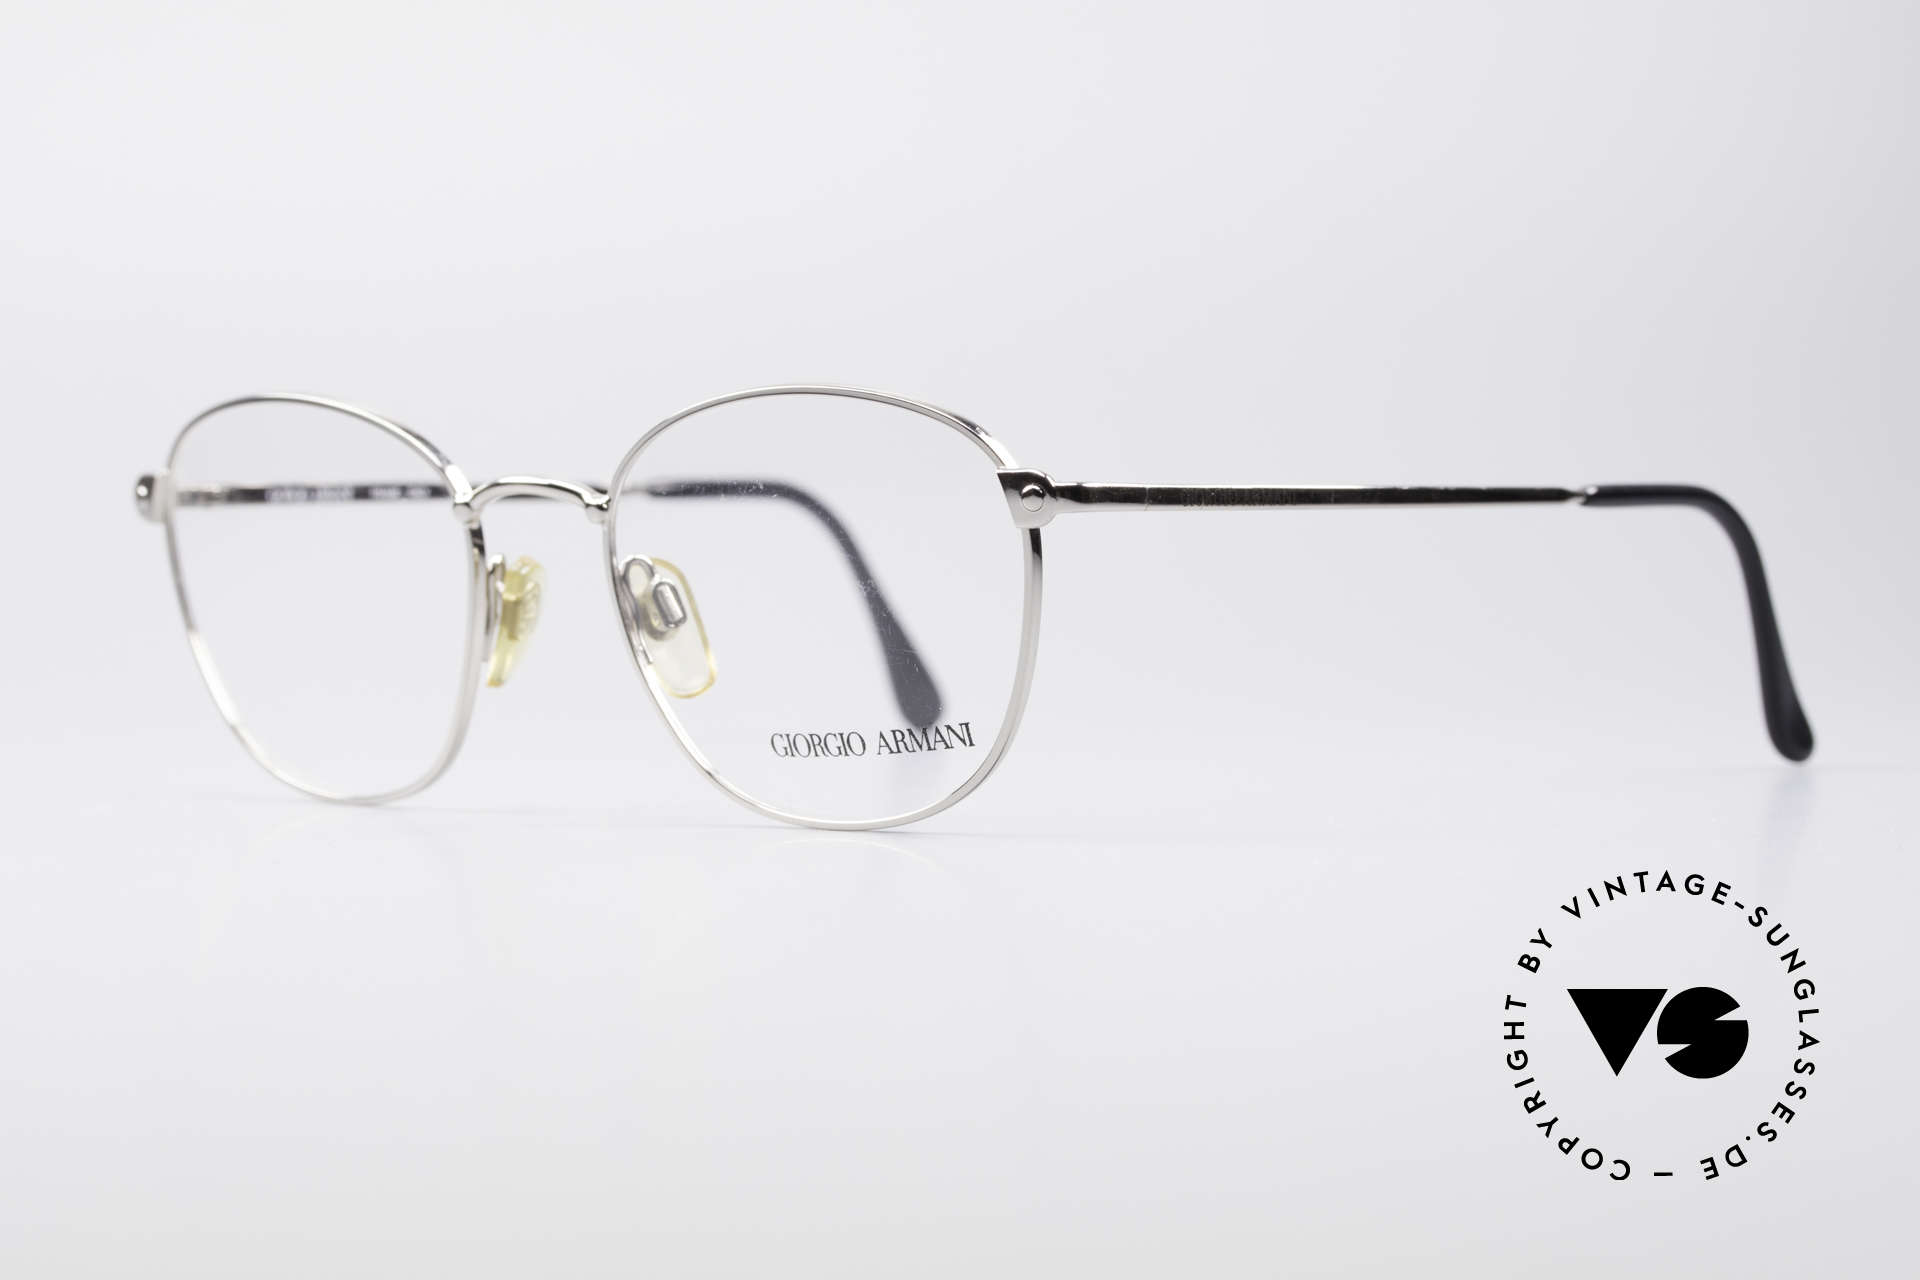 Giorgio Armani 168 Men's Vintage Eyeglasses, sober, timeless style: suitable for many occasions, Made for Men